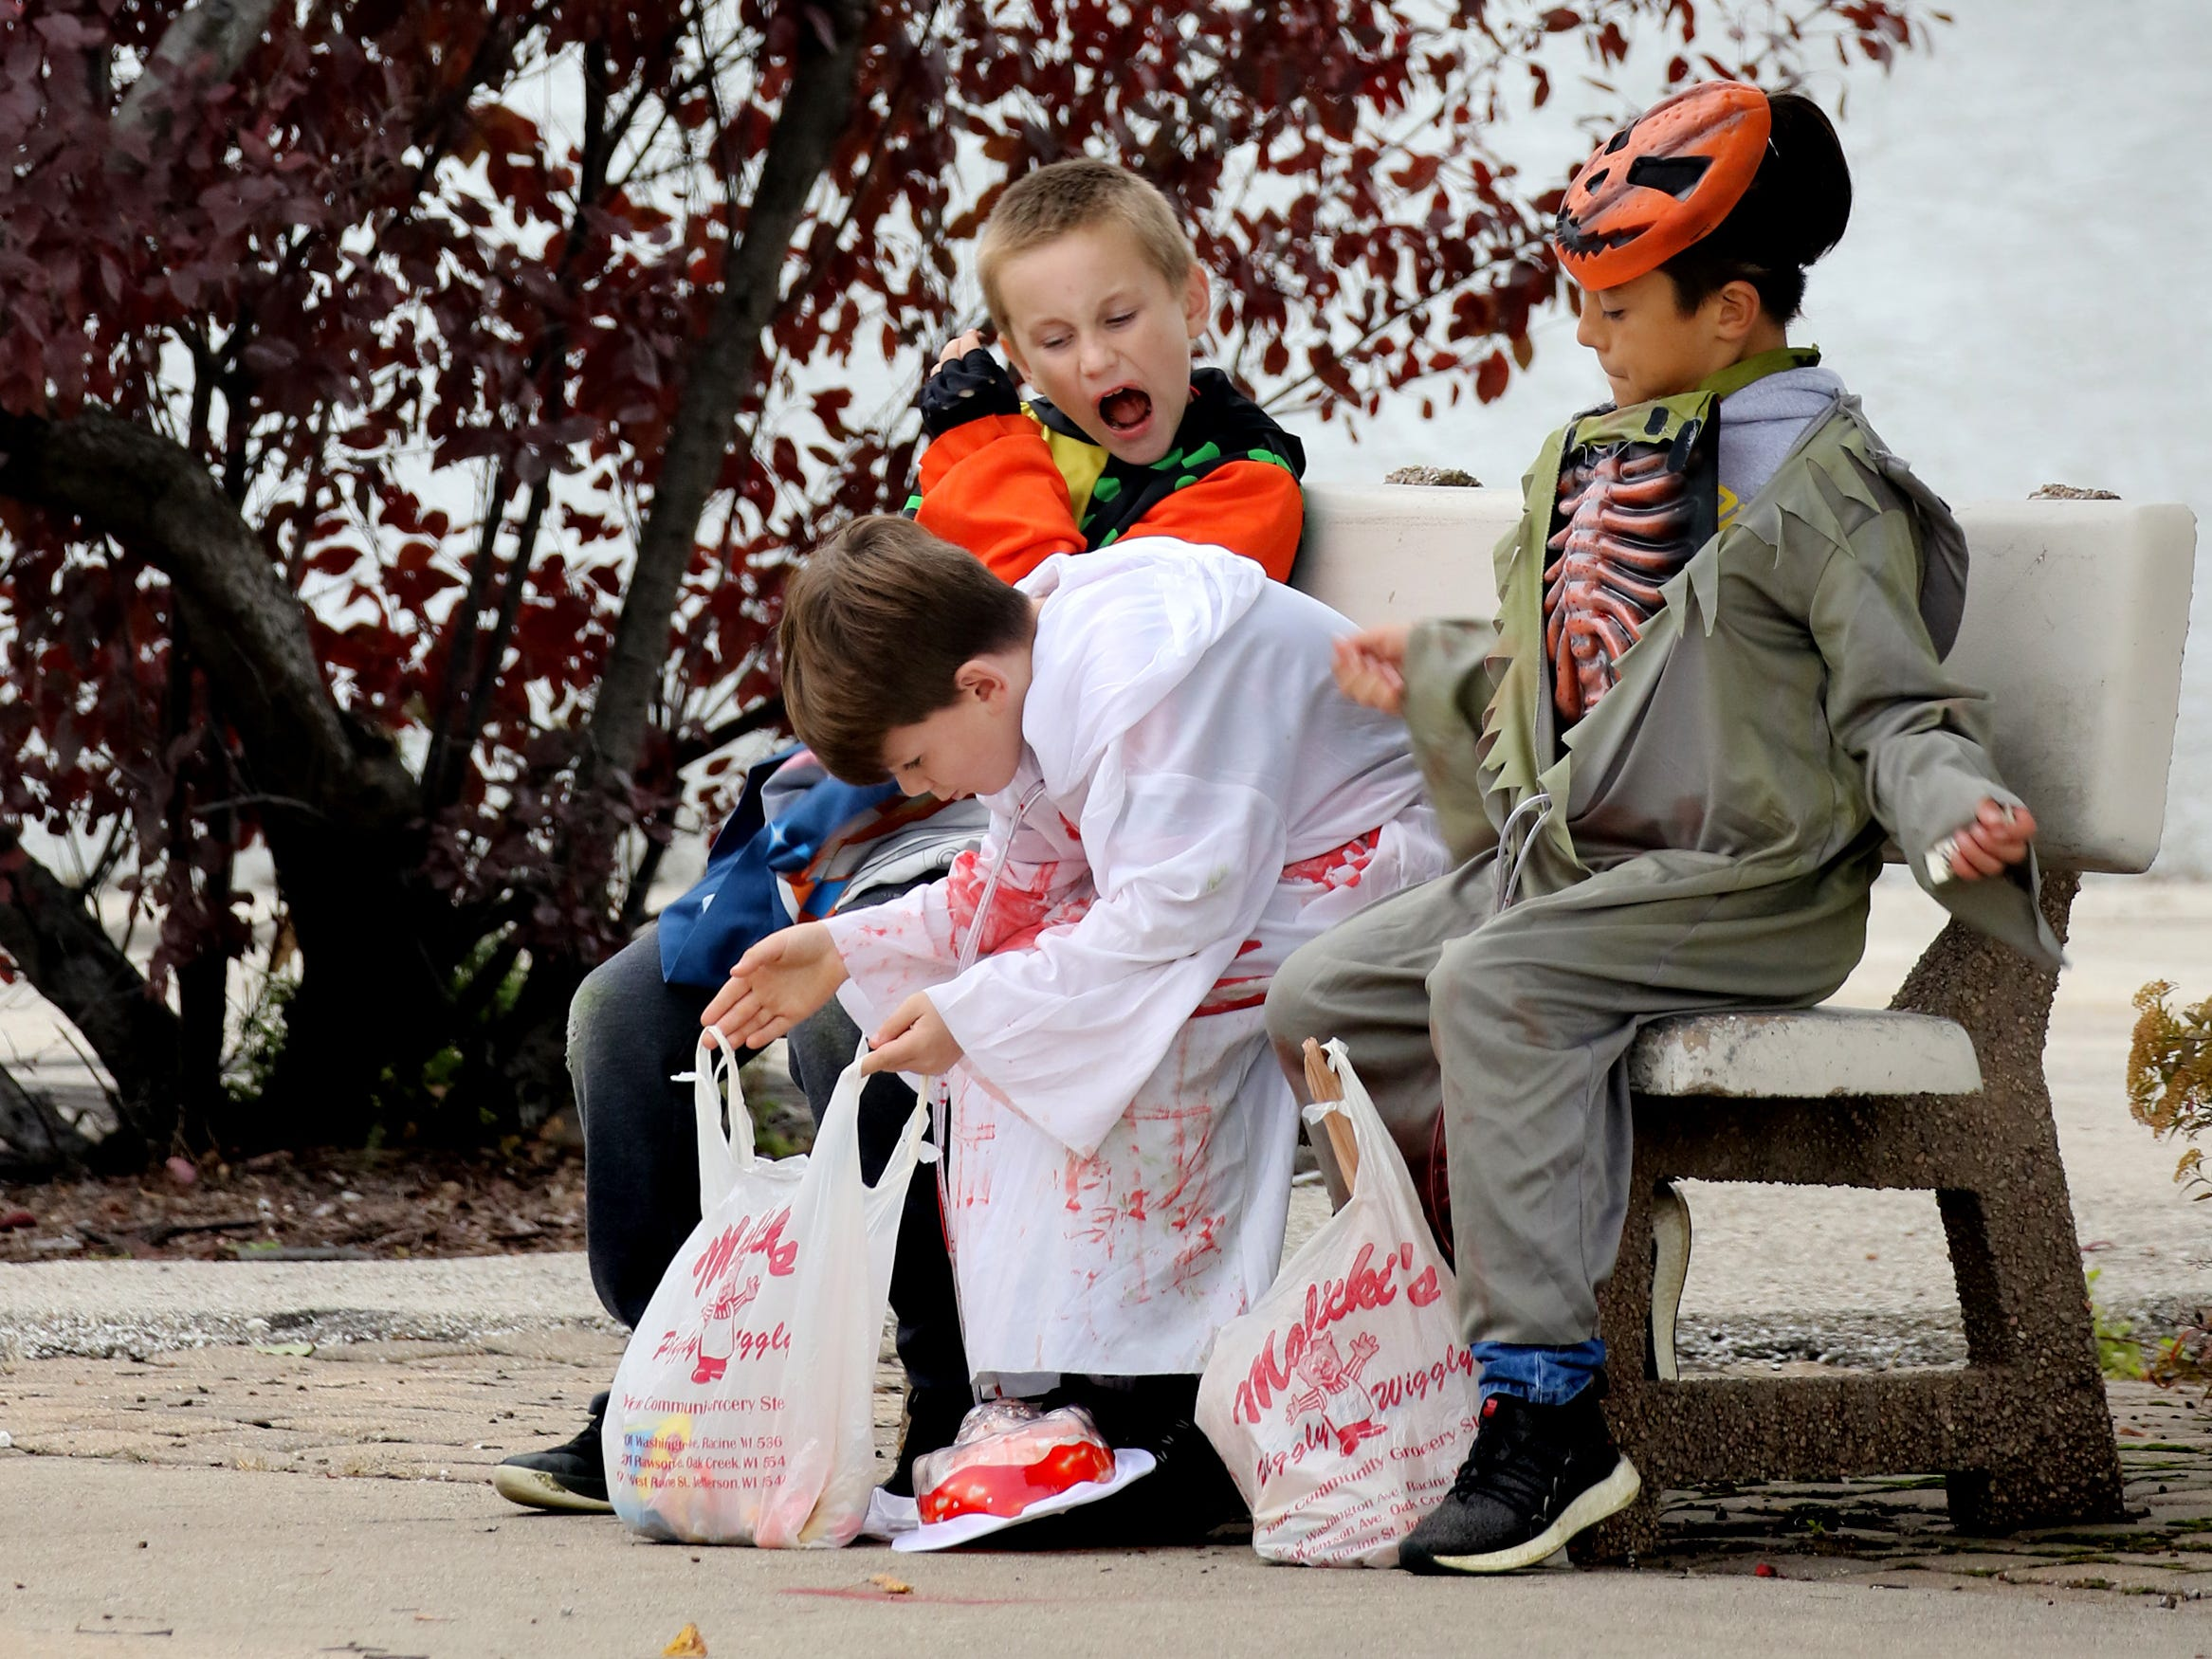 Children stop to check what they collected during the South Milwaukee Downtown Trick or Treating on Oct. 27.